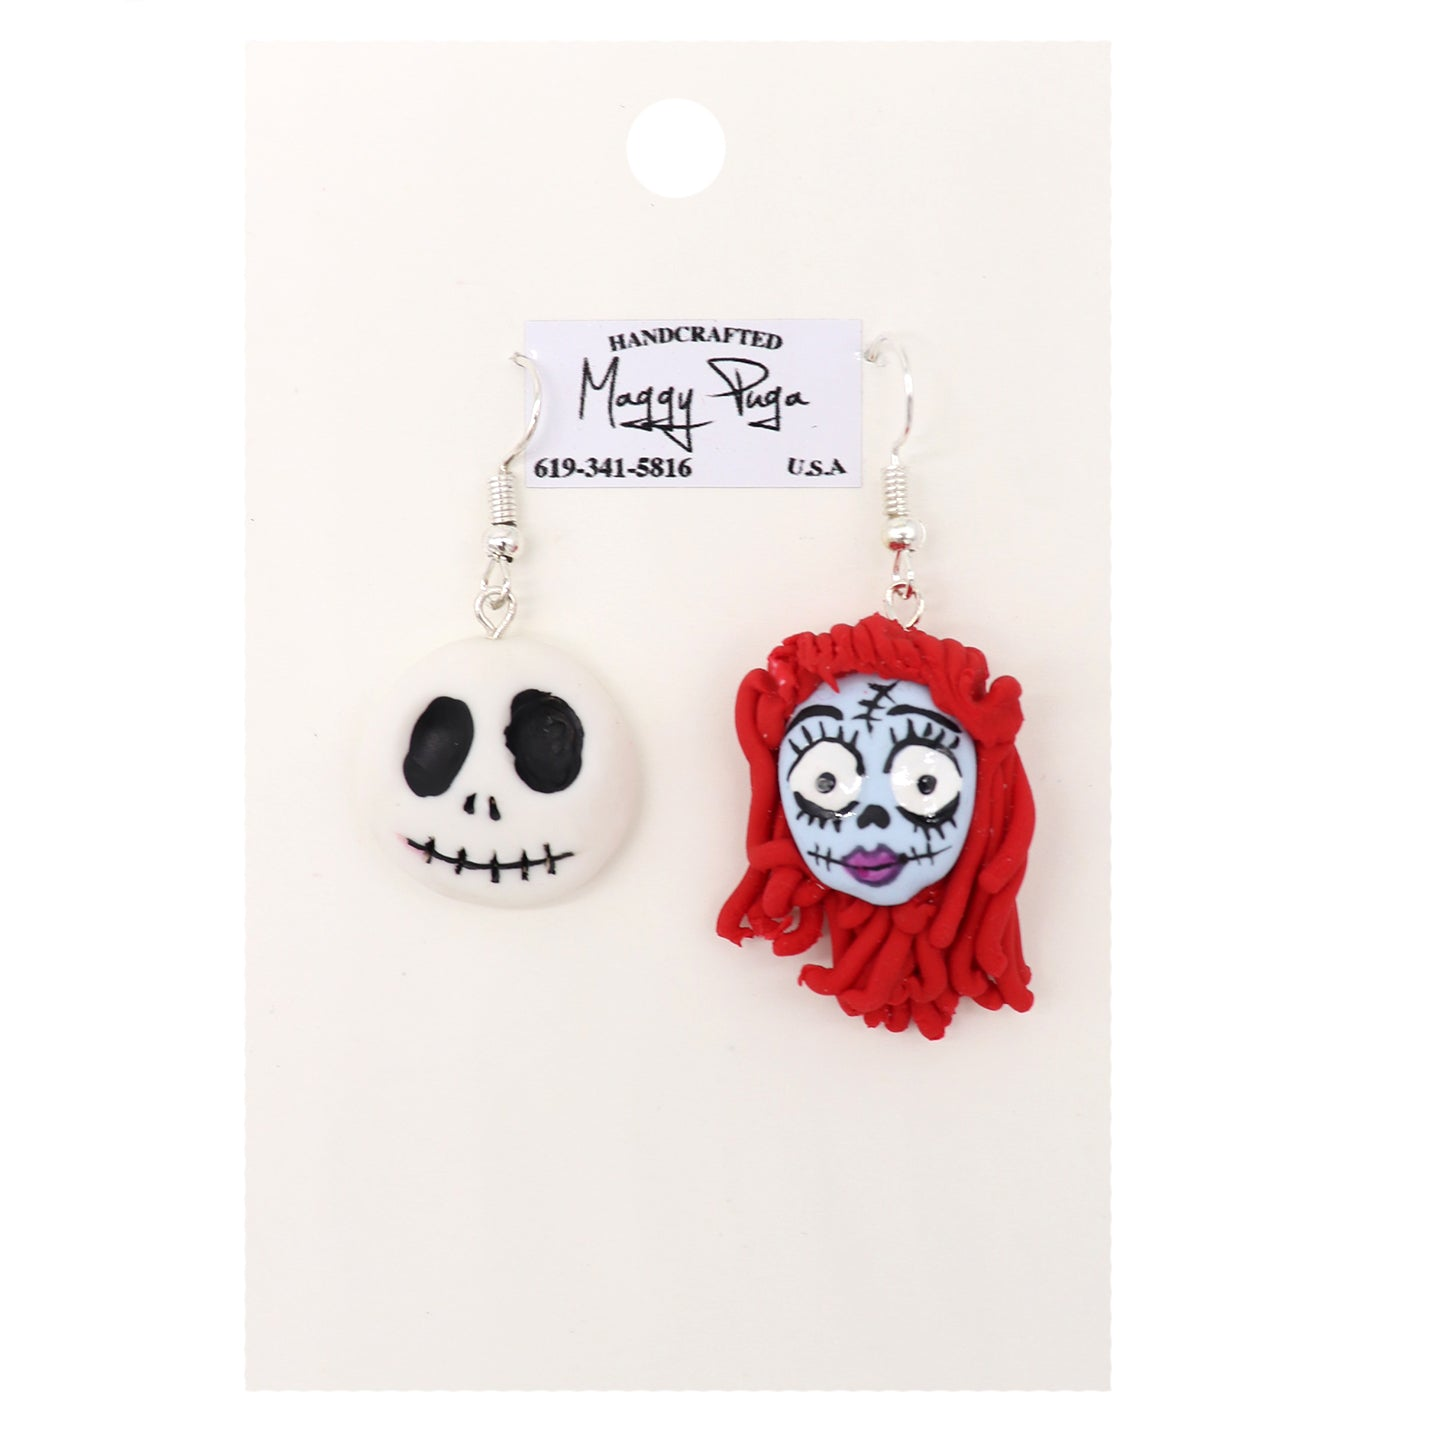 Jack and Sally Earrings. Holiday gifts for Christmas. Handcrafted white skull with black features. Blue skull with red hair. Handmade by small shop Maggy Puga and Sold by SDTrading Co.